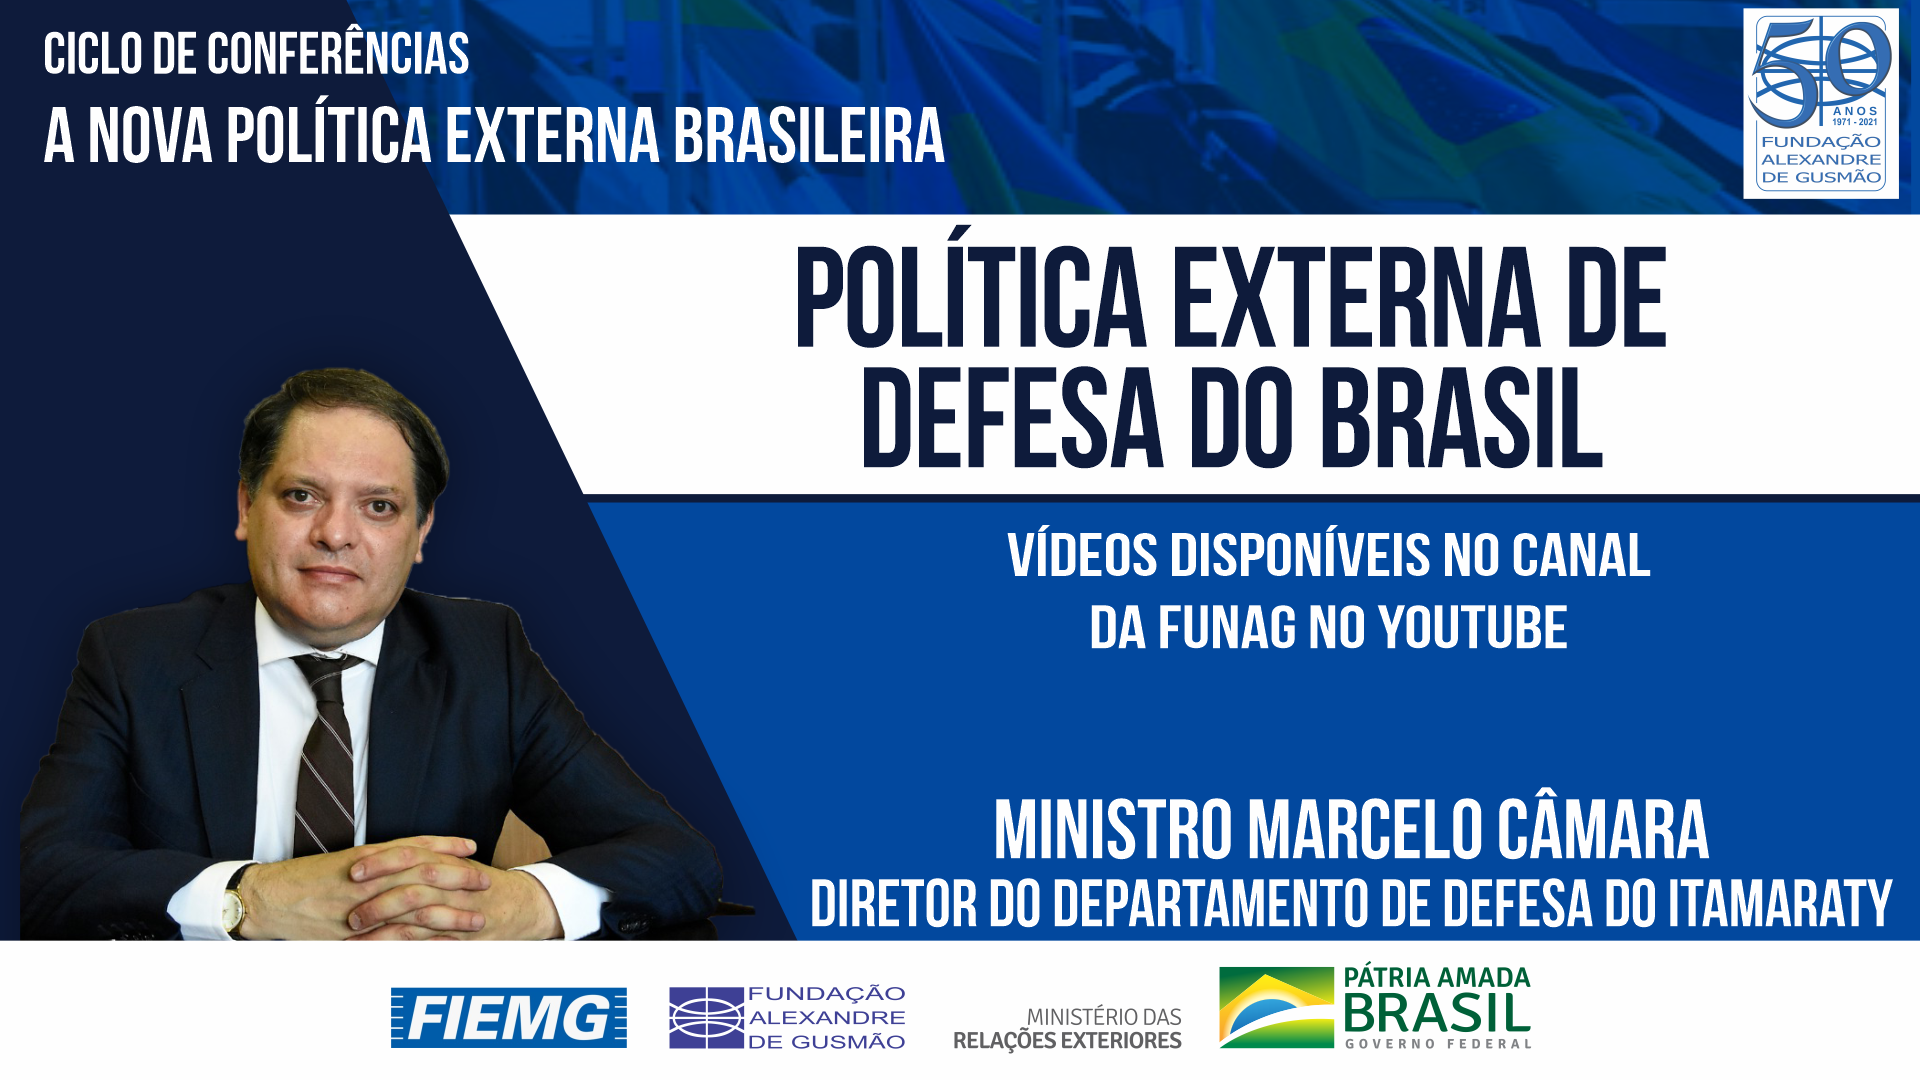 Watch the videos of the conference of the Director of the Department of Defense of the Ministry of Foreign Affairs, Minister Marcelo Câmara